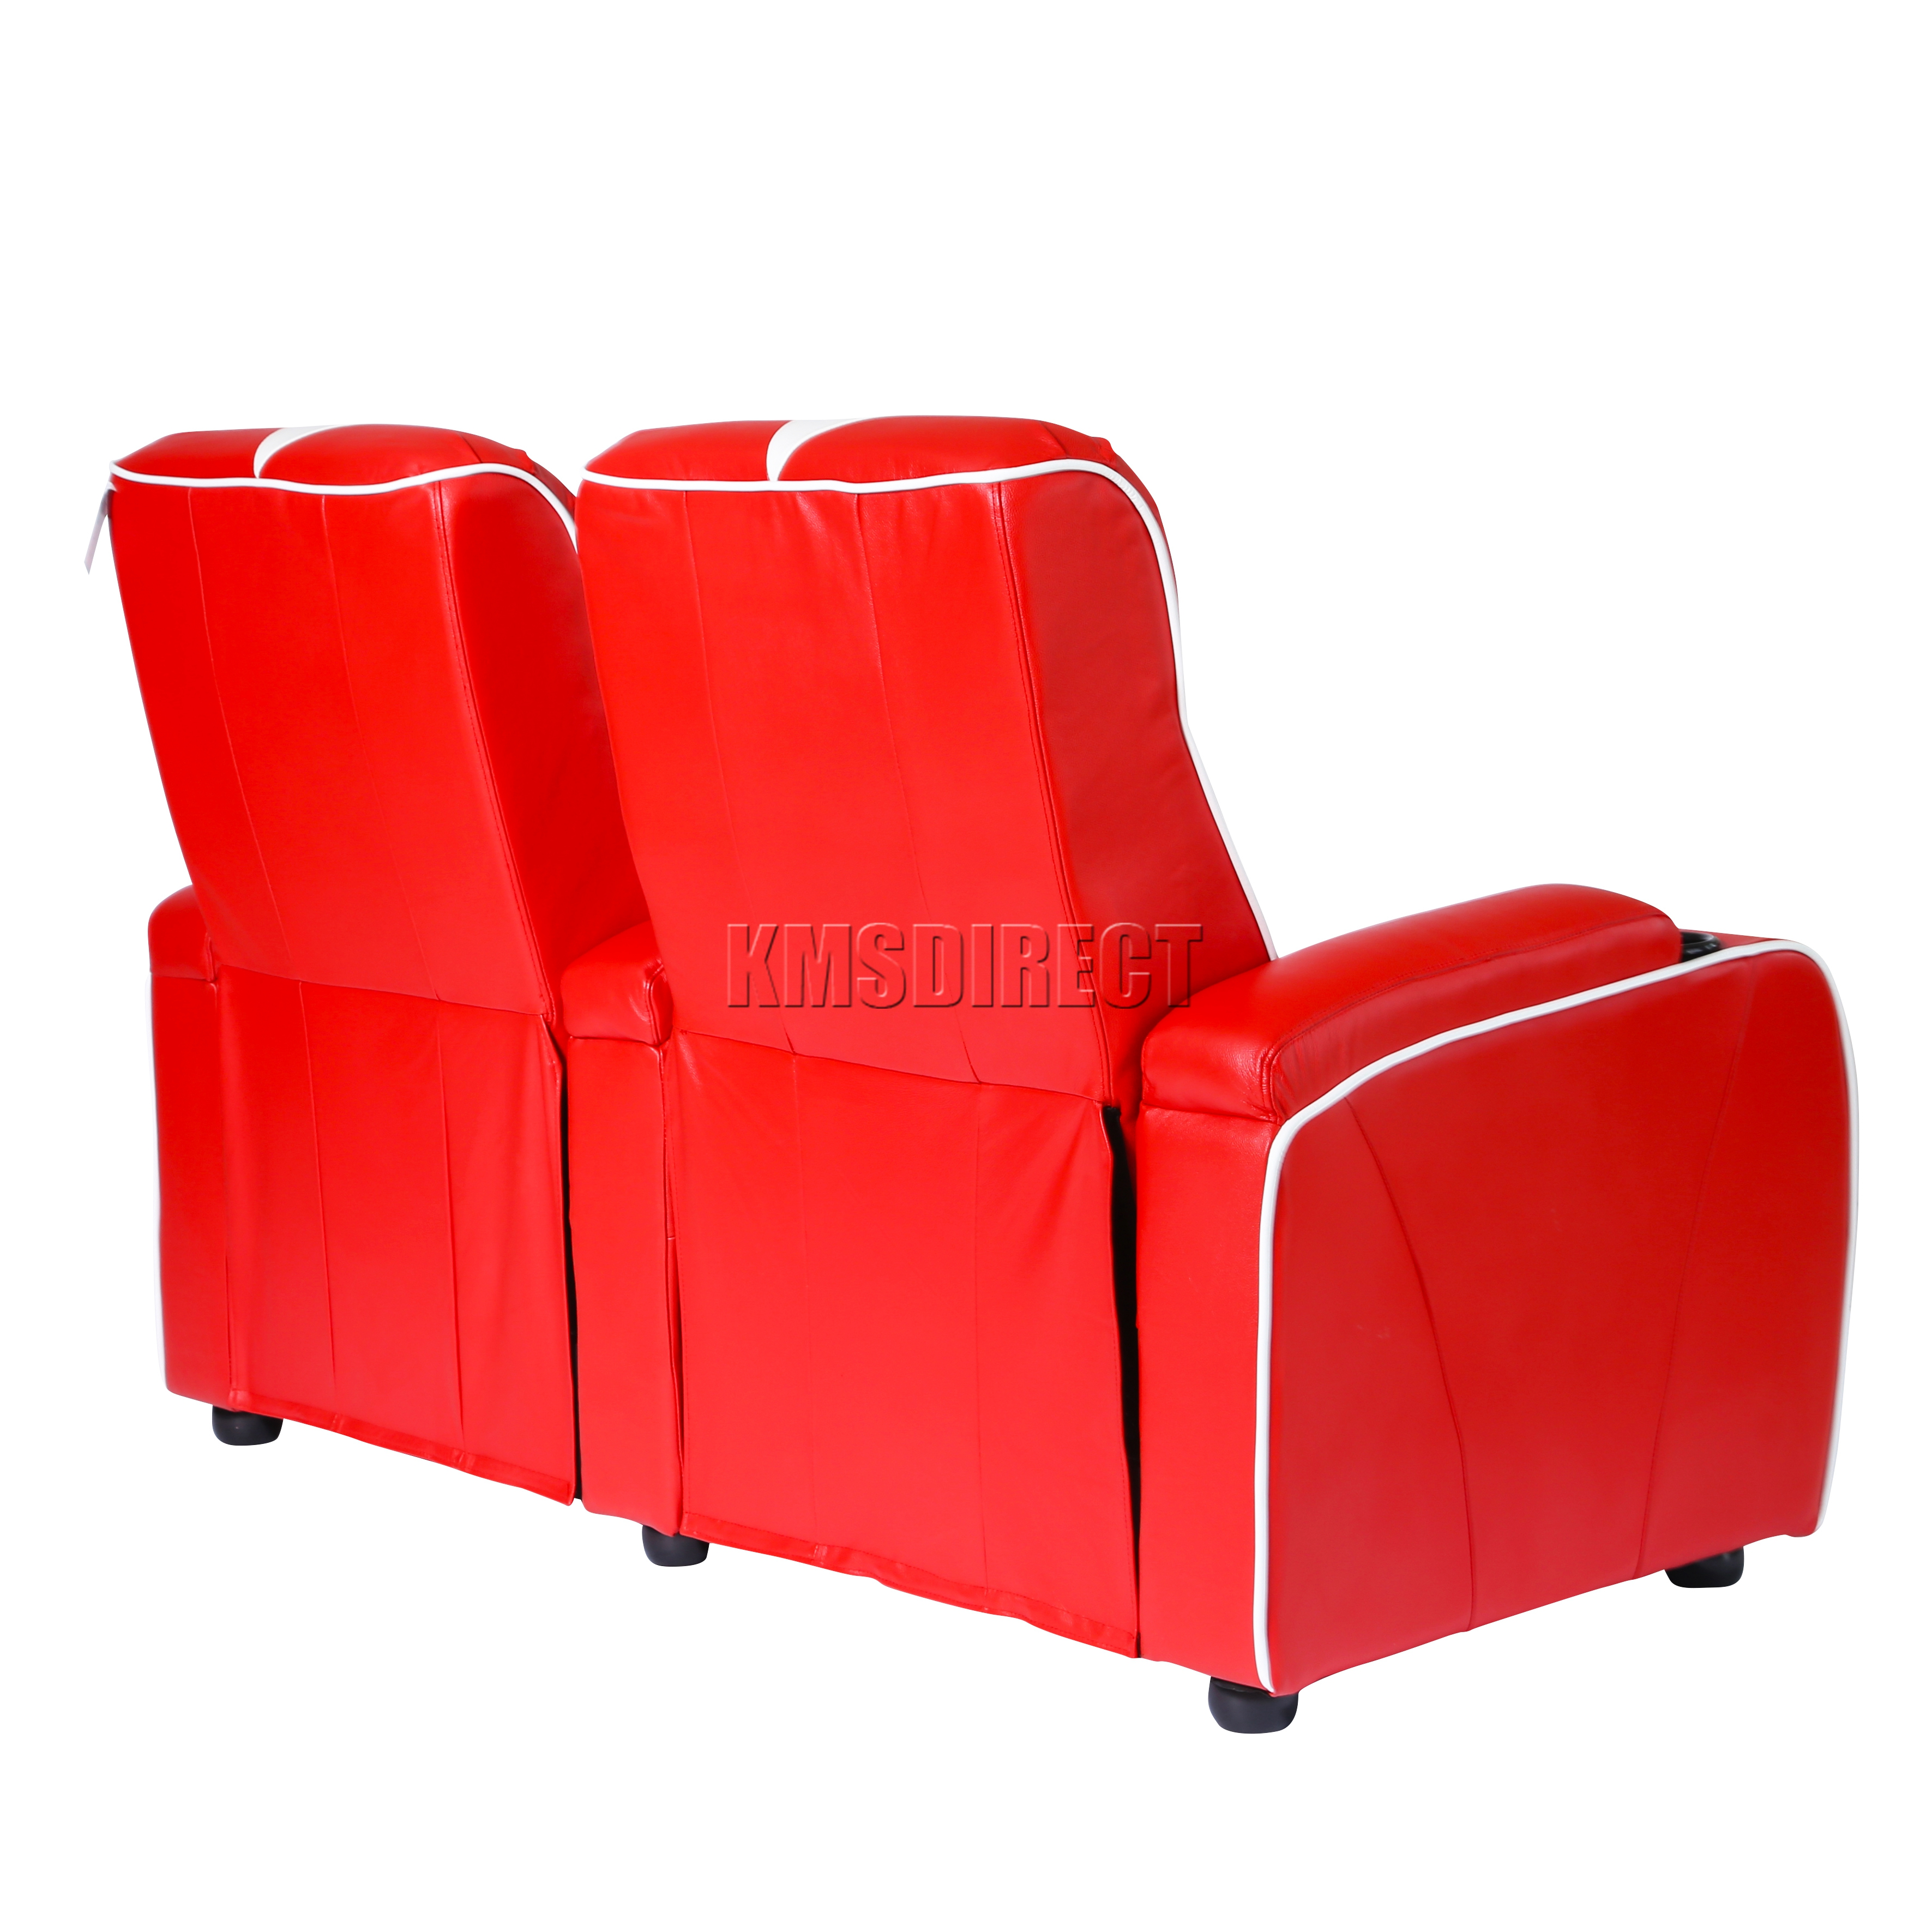 electric recliner sofa not working dwr sofas foxhunter leather retro cinema movie chair 2 seat